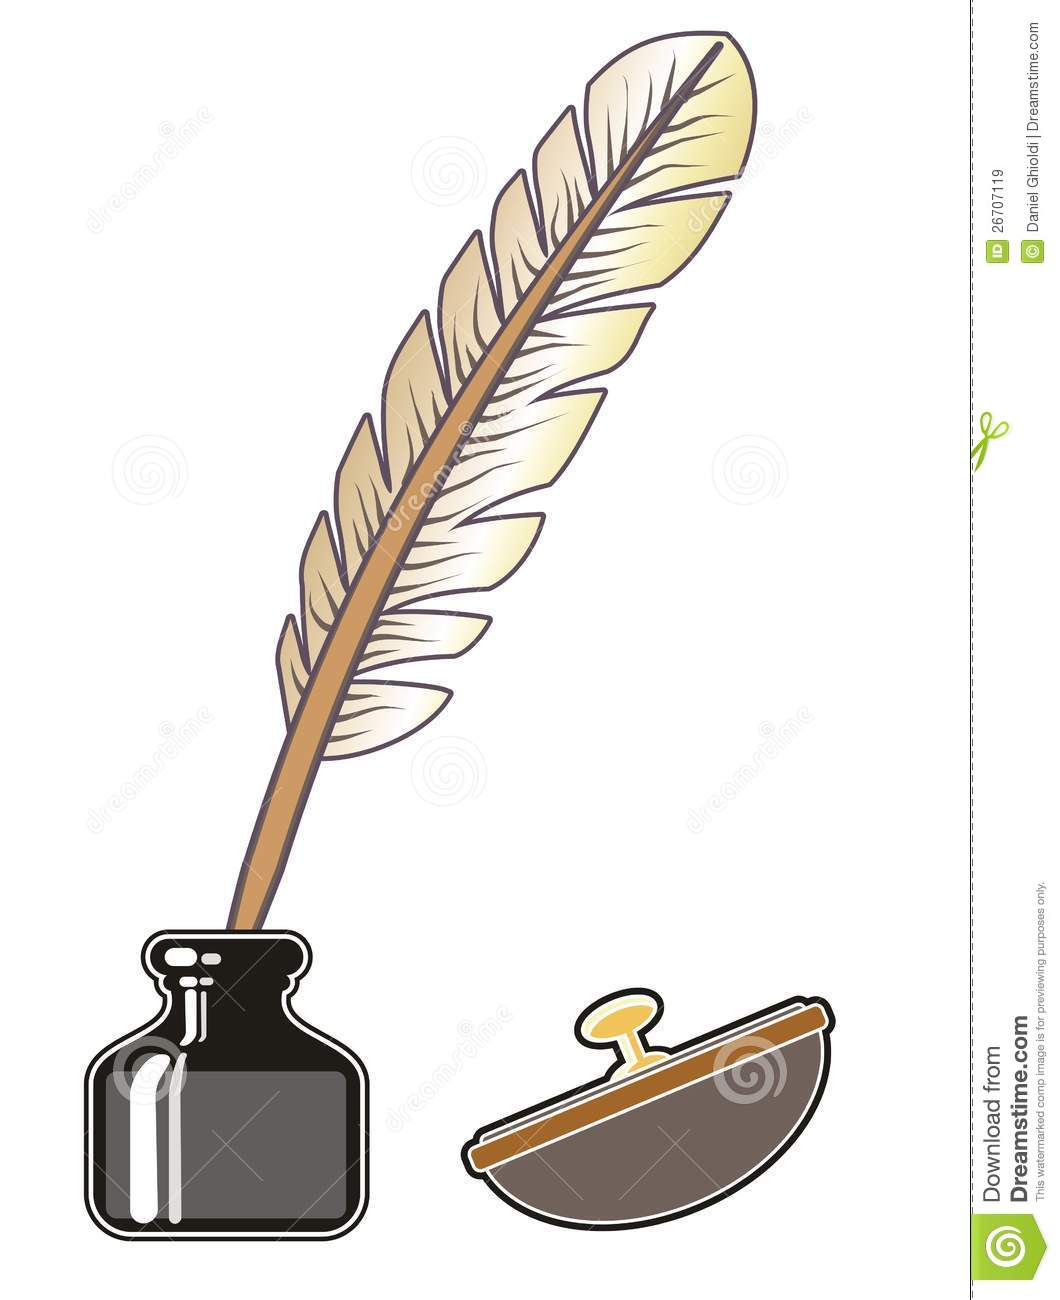 Inkwell And Quill Royalty Free Stock Images - Image: 26707119Quill And Inkwell Image